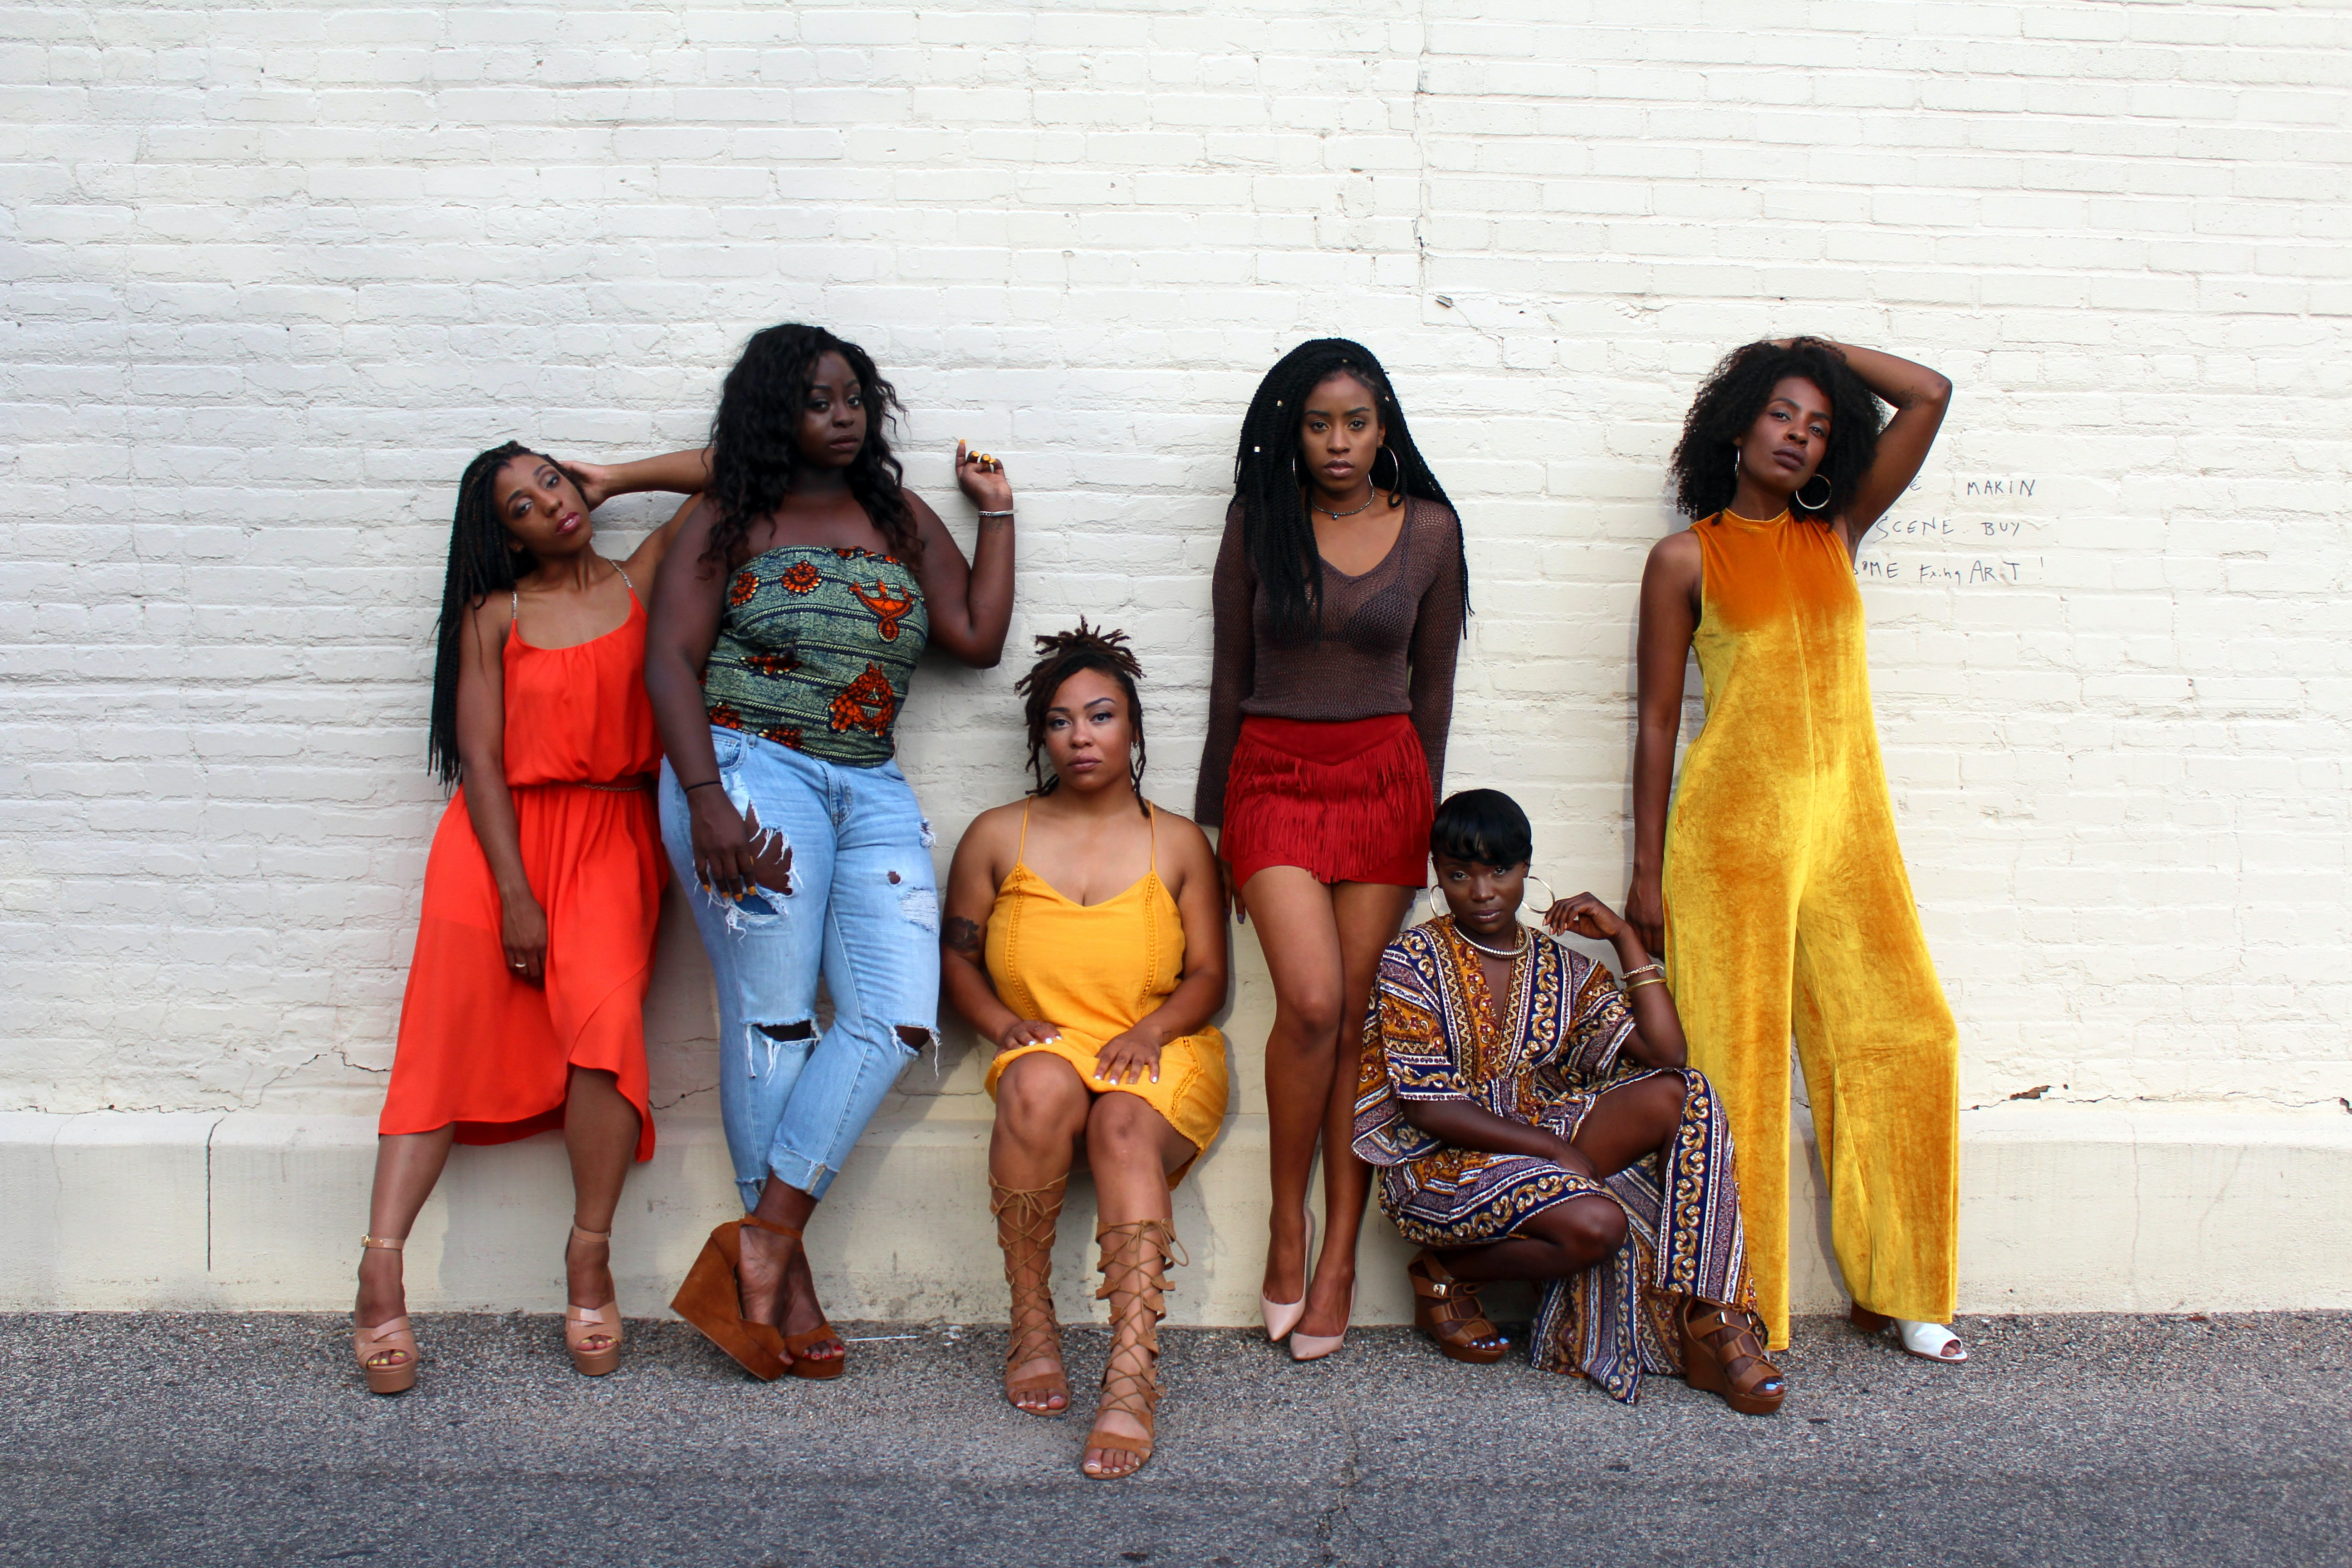 Six Black women wearing different styles of clothing leaning on a white brick wall. Photo courtesy of Clarke Sanders on Unsplash.